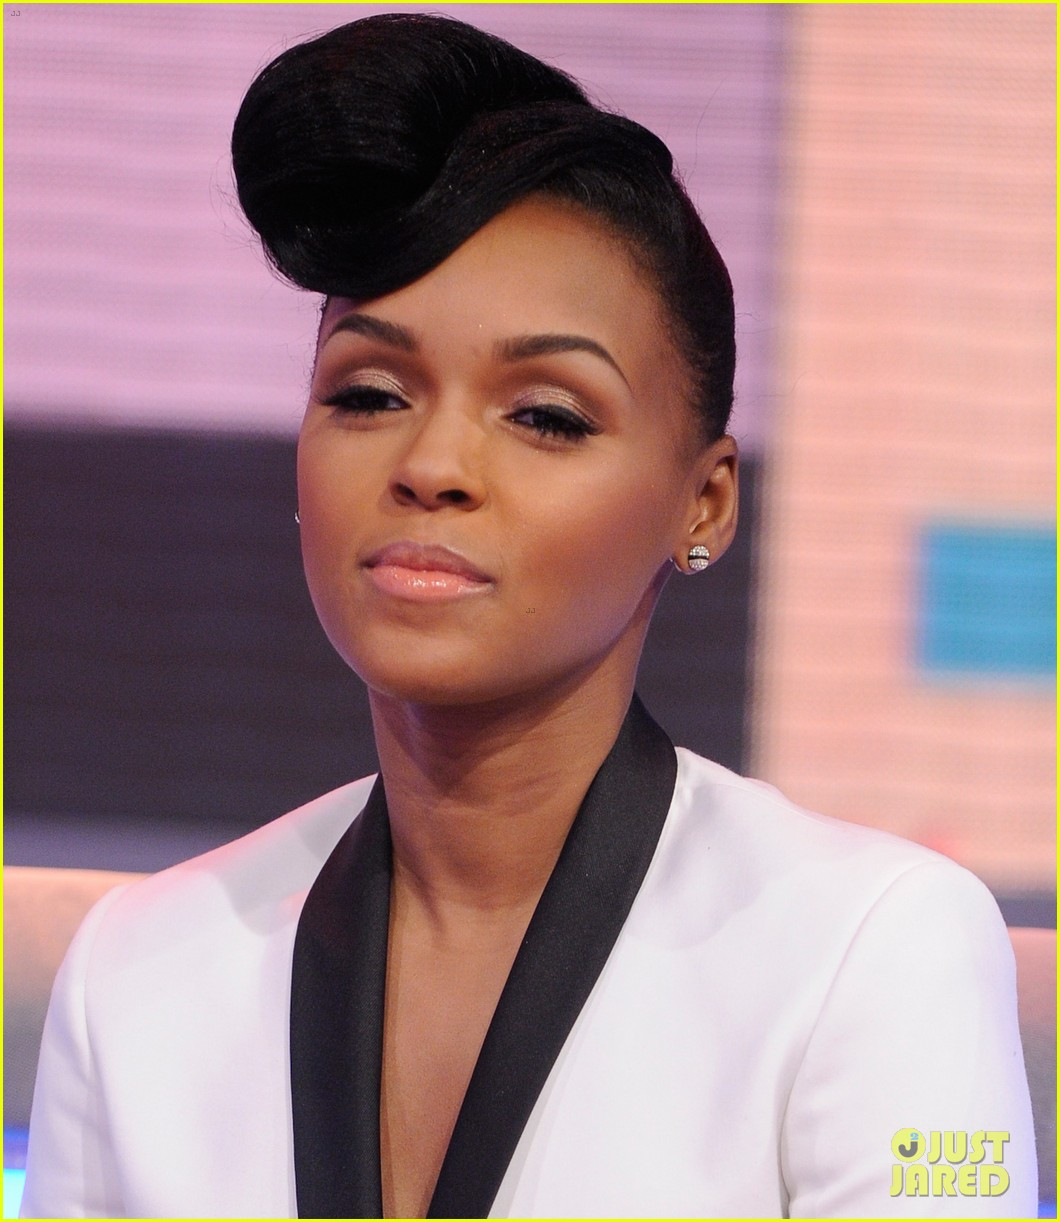 janelle monae q u e e n video premiere watch now 03